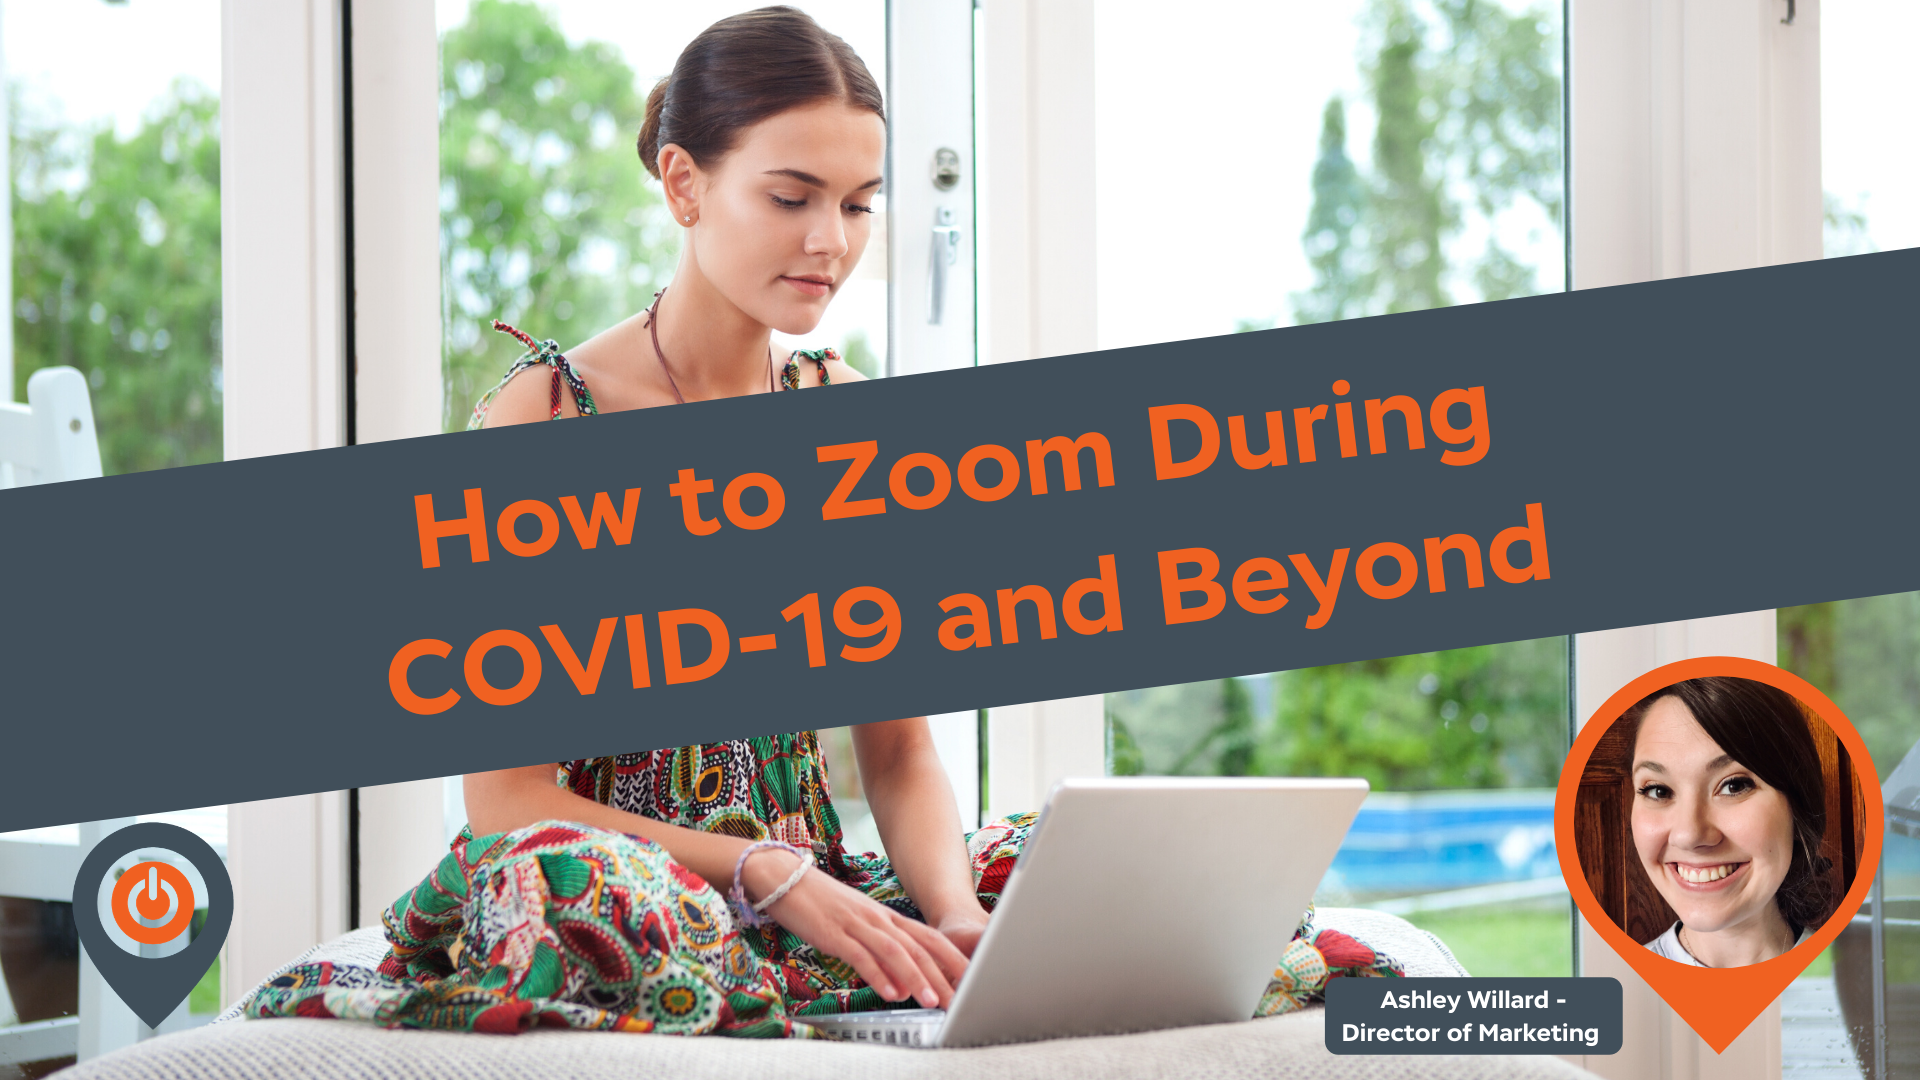 How to Zoom During COVID-19 and Beyond - Local Impact Blog